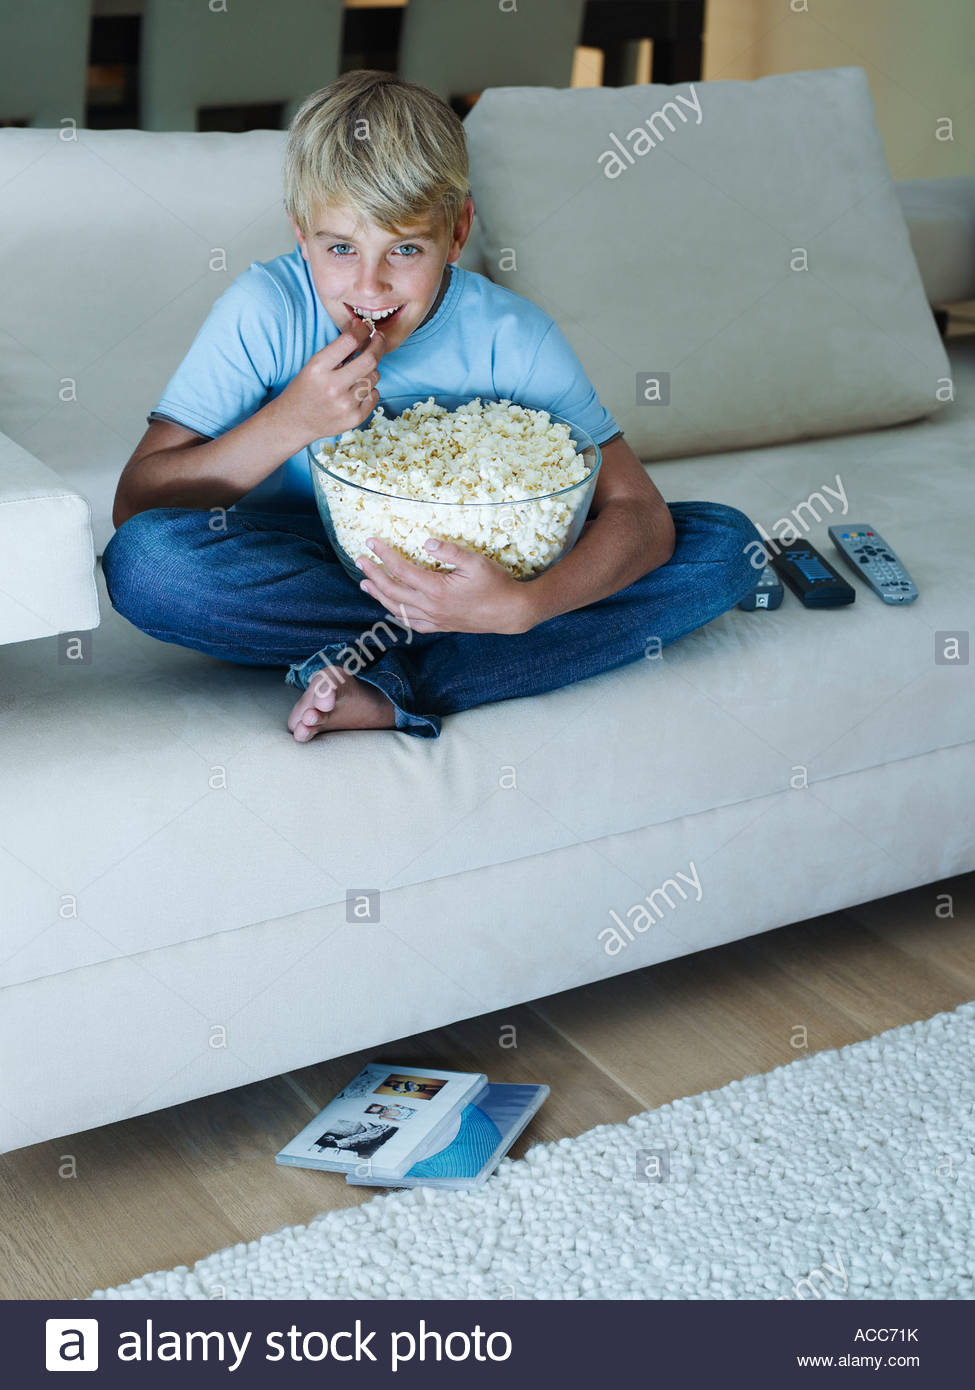 Young boy eating popcorn watching television - Stock Image